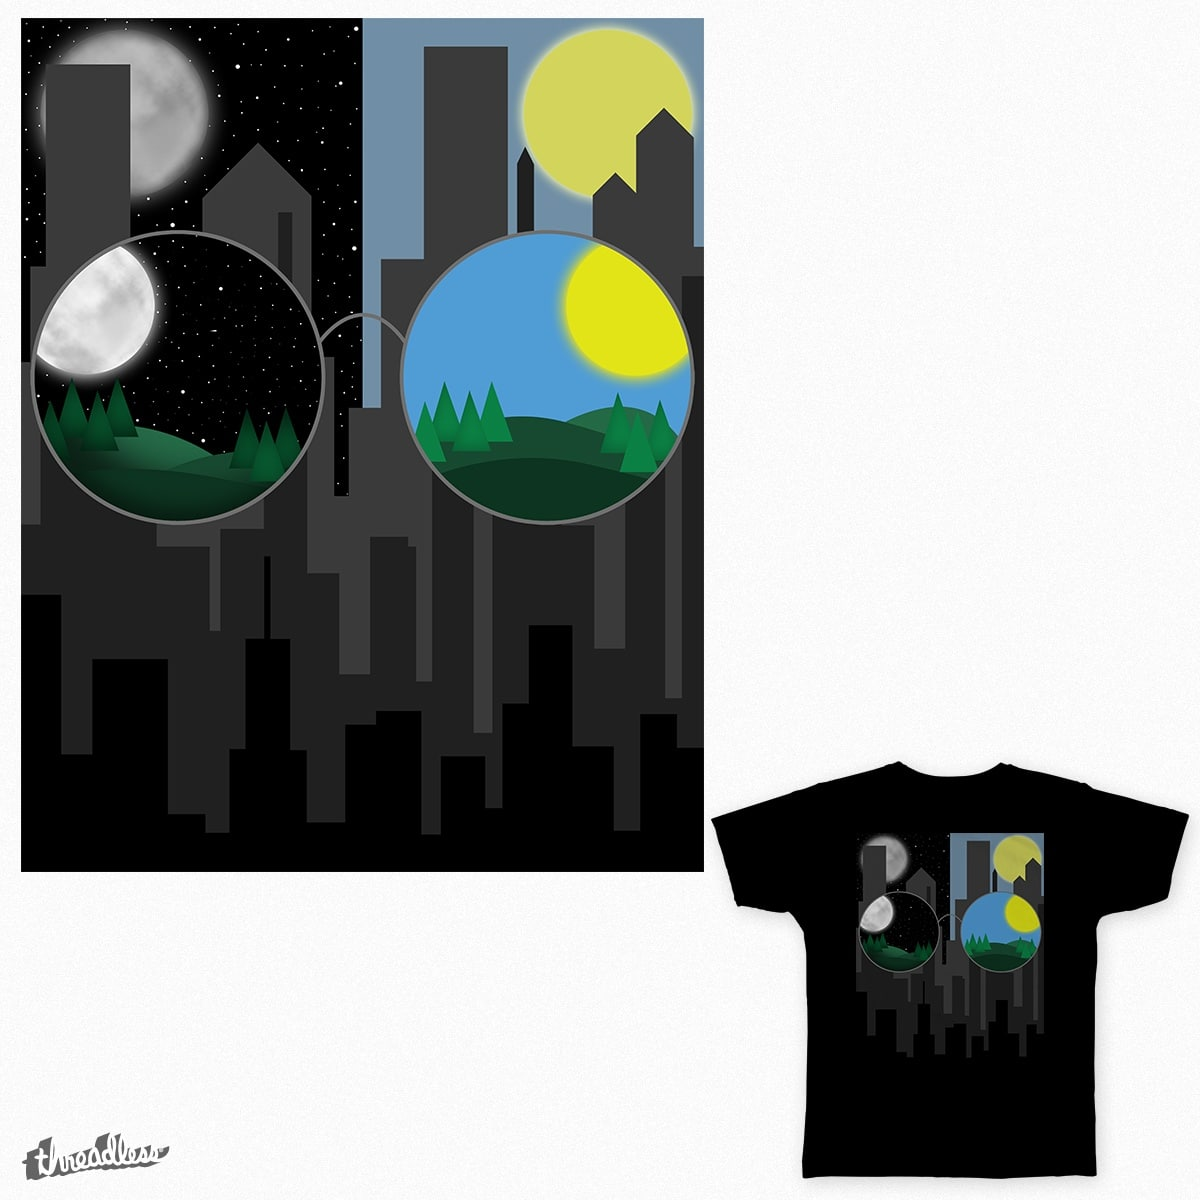 Day and Night by jamieBryant on Threadless